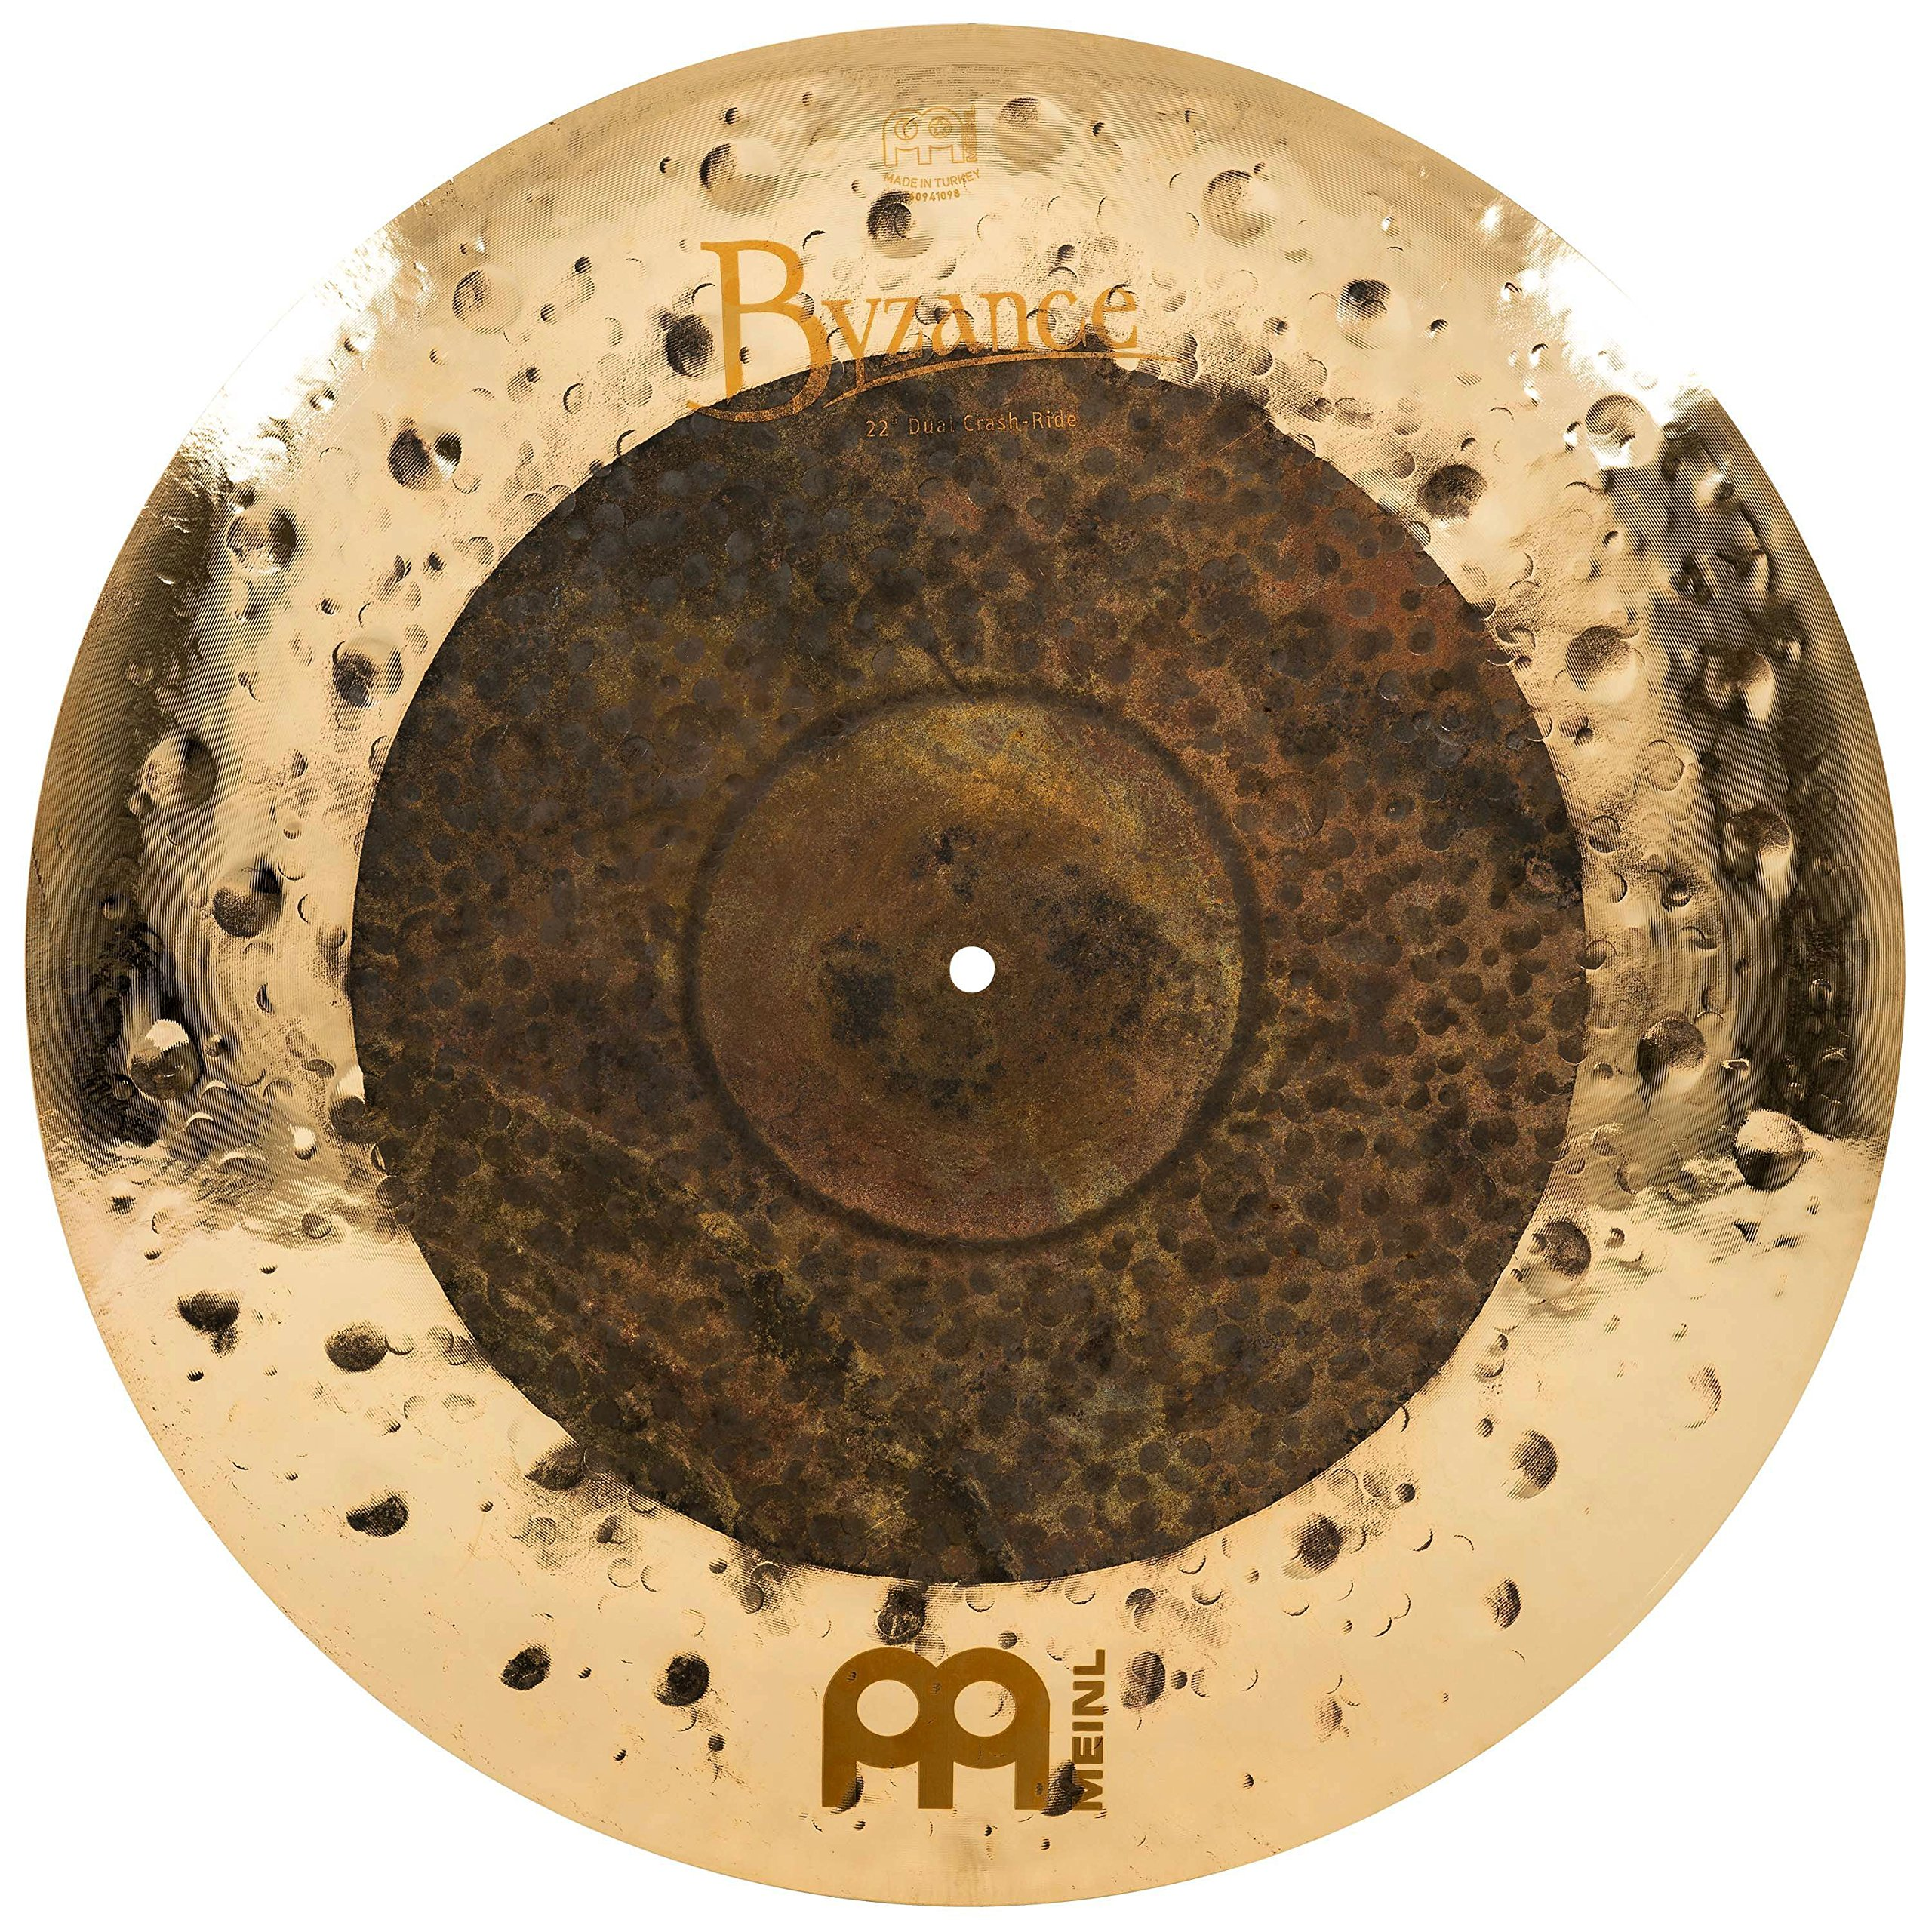 Meinl Cymbals B22DUCR Byzance Extra Dry 22-Inch Dual Crash/Ride Cymbal (VIDEO) by Meinl Cymbals